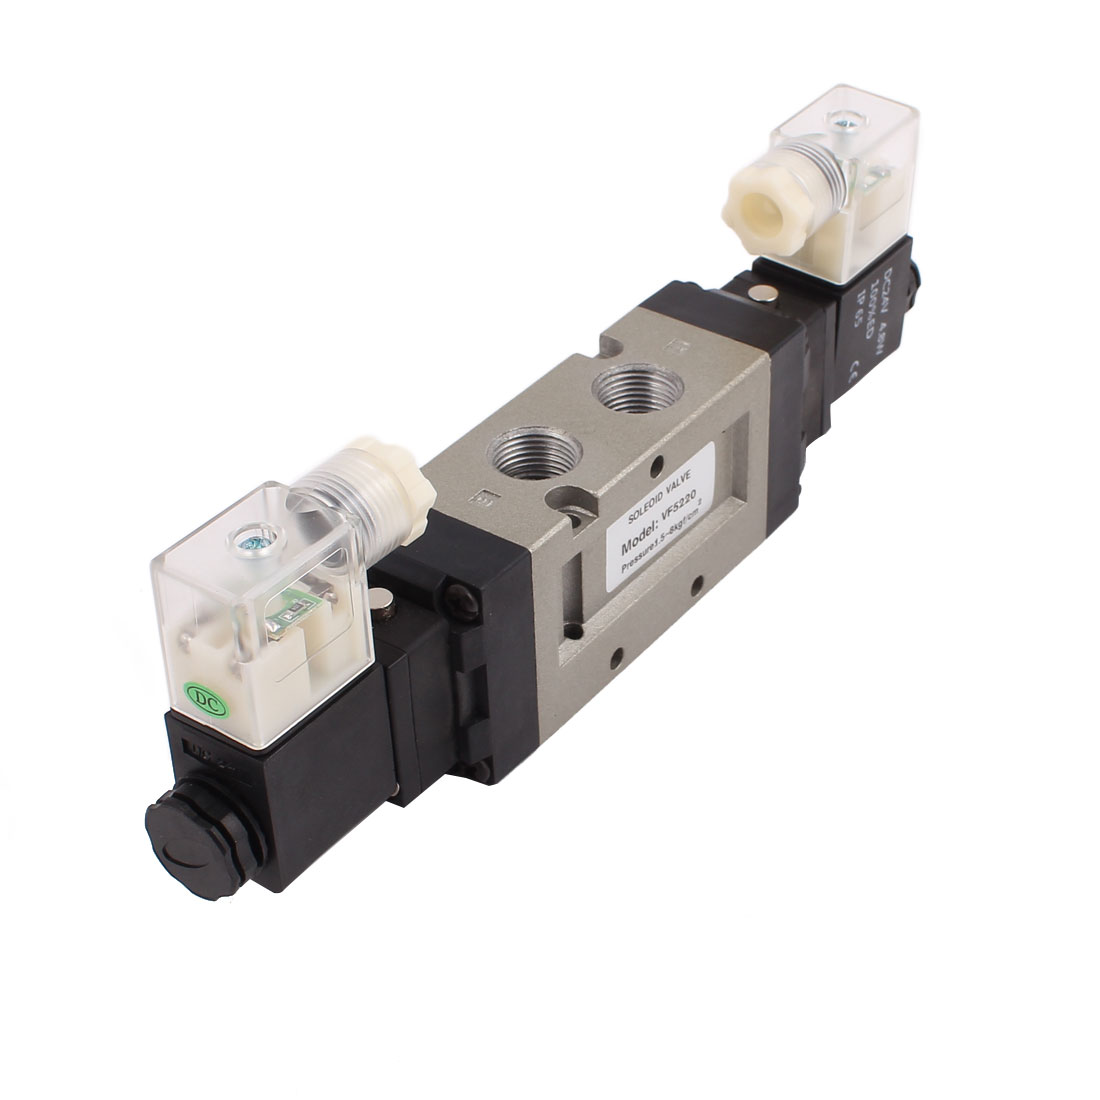 DC 24V Neutral Electric Pneumatic Component Air Control Solenoid Valve DS5220